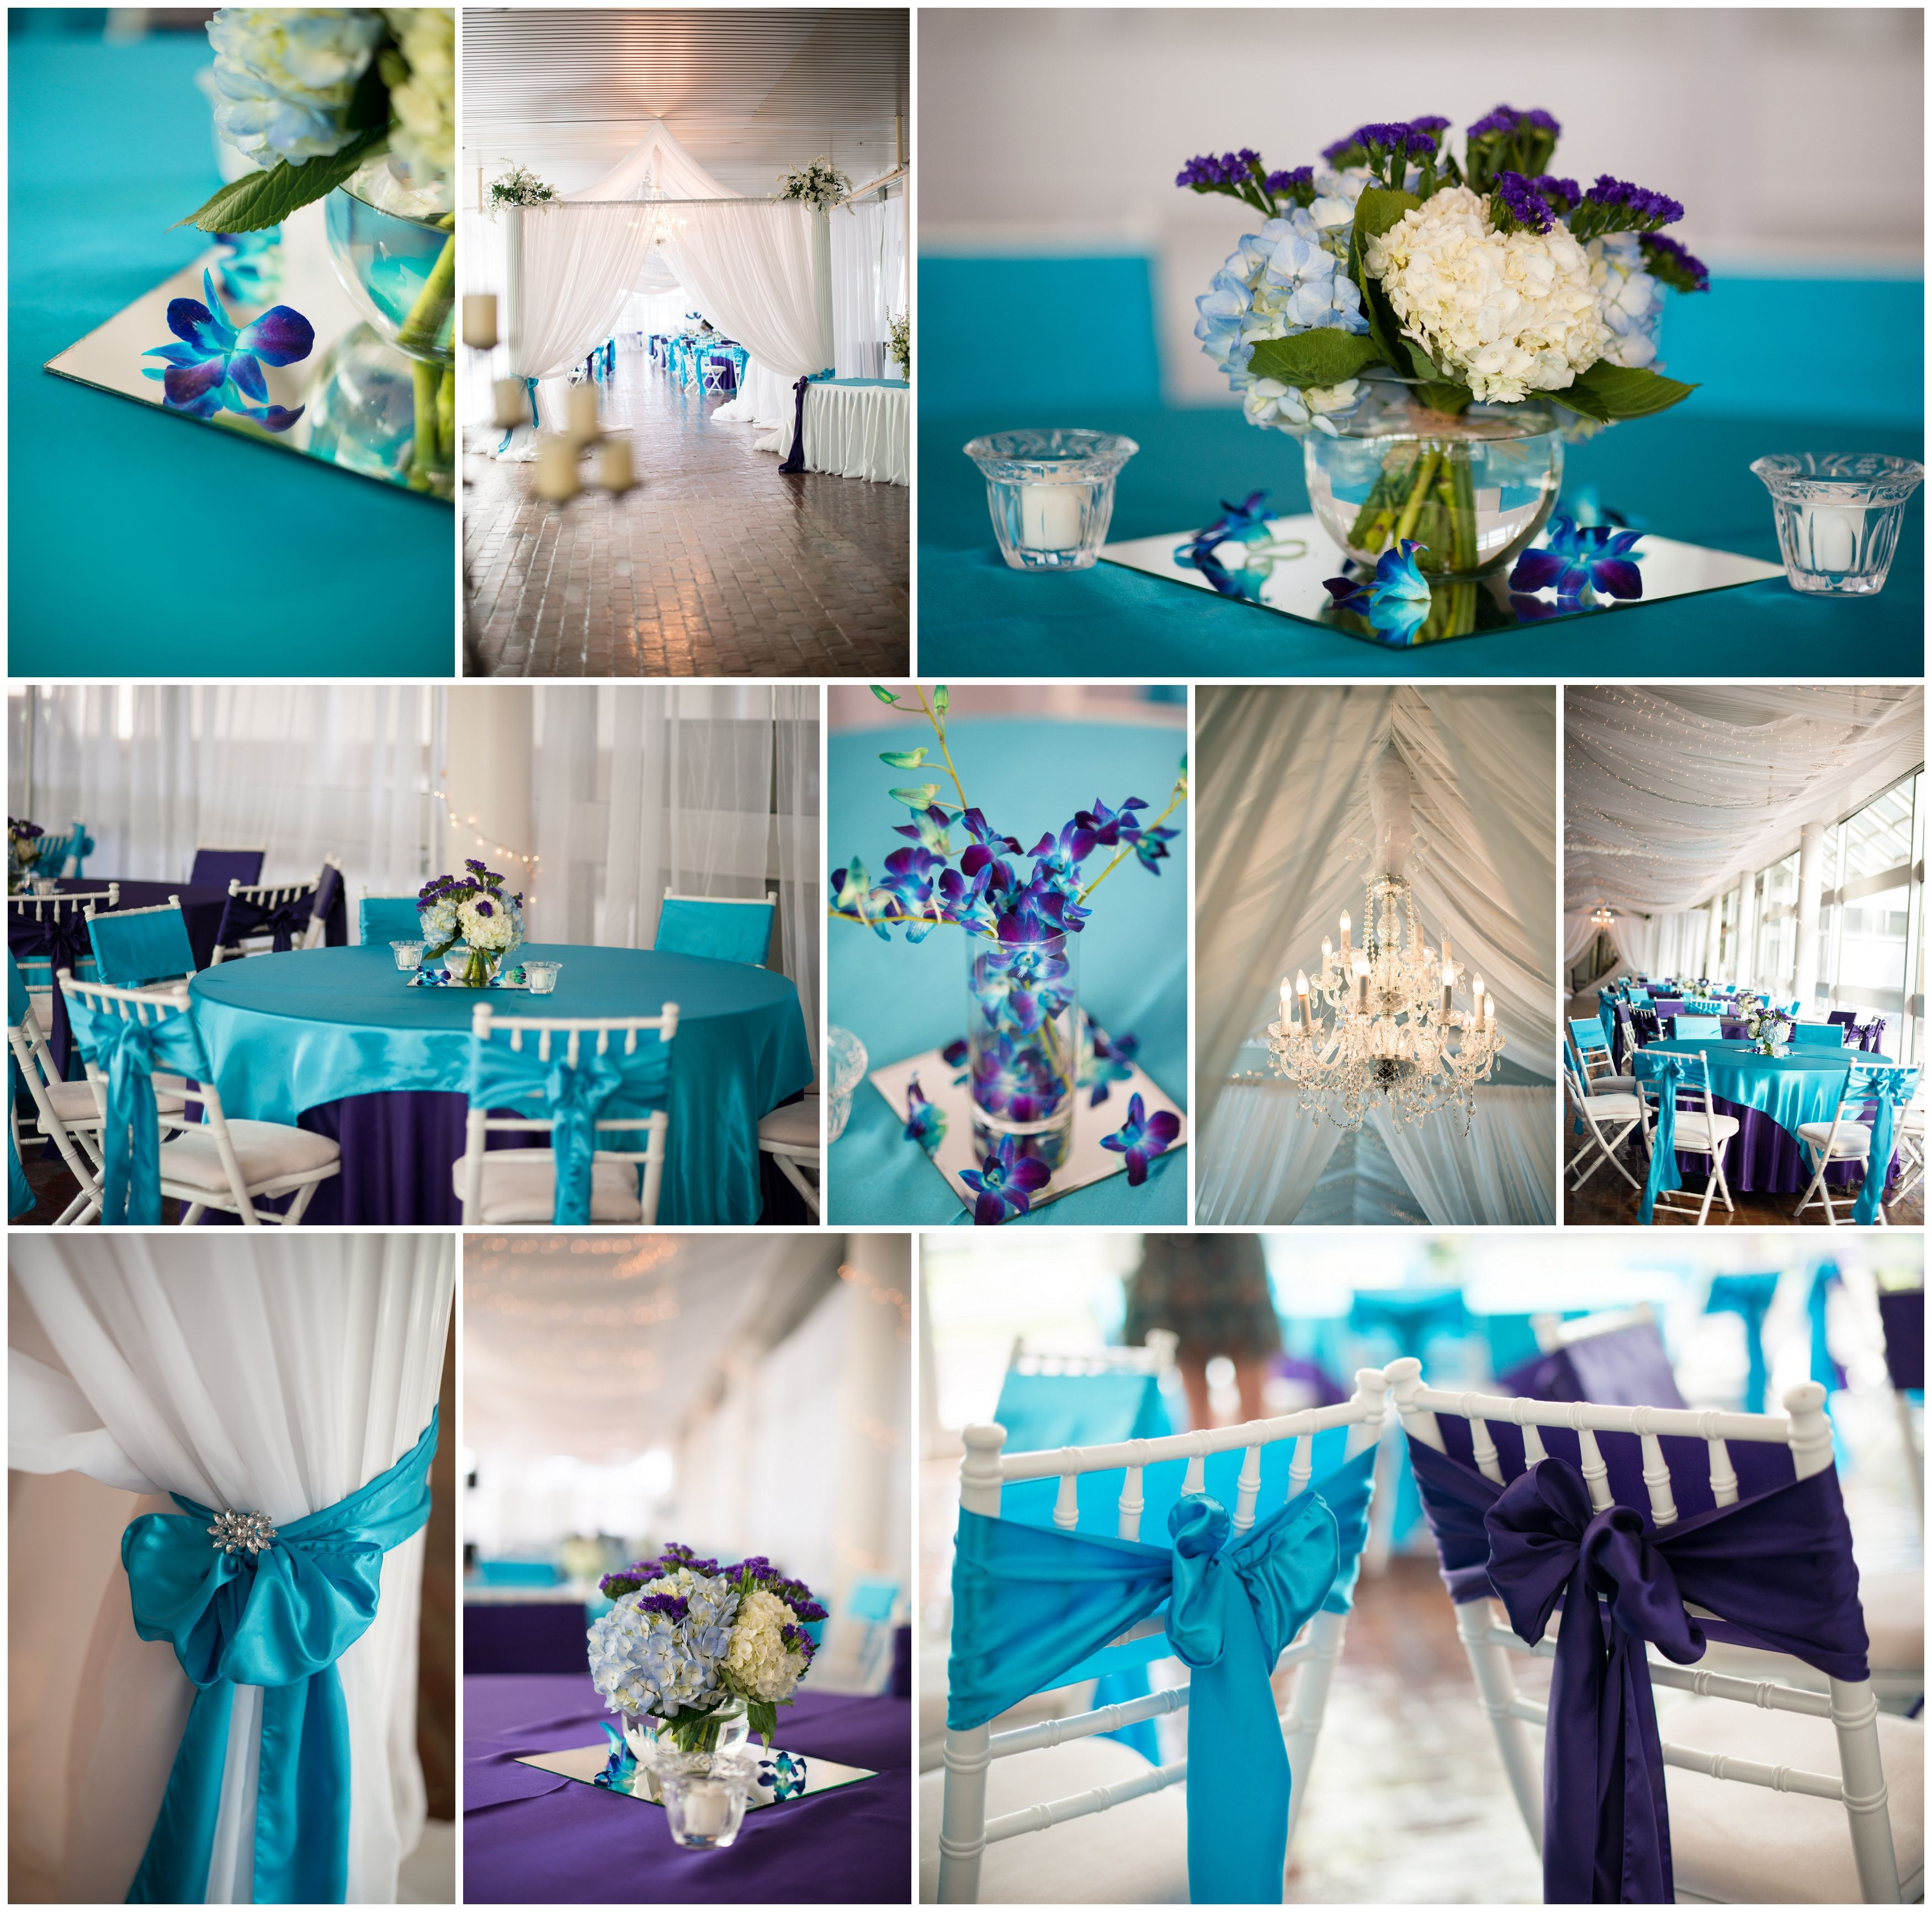 Details, Wedding Color Scheme Teal And Purple